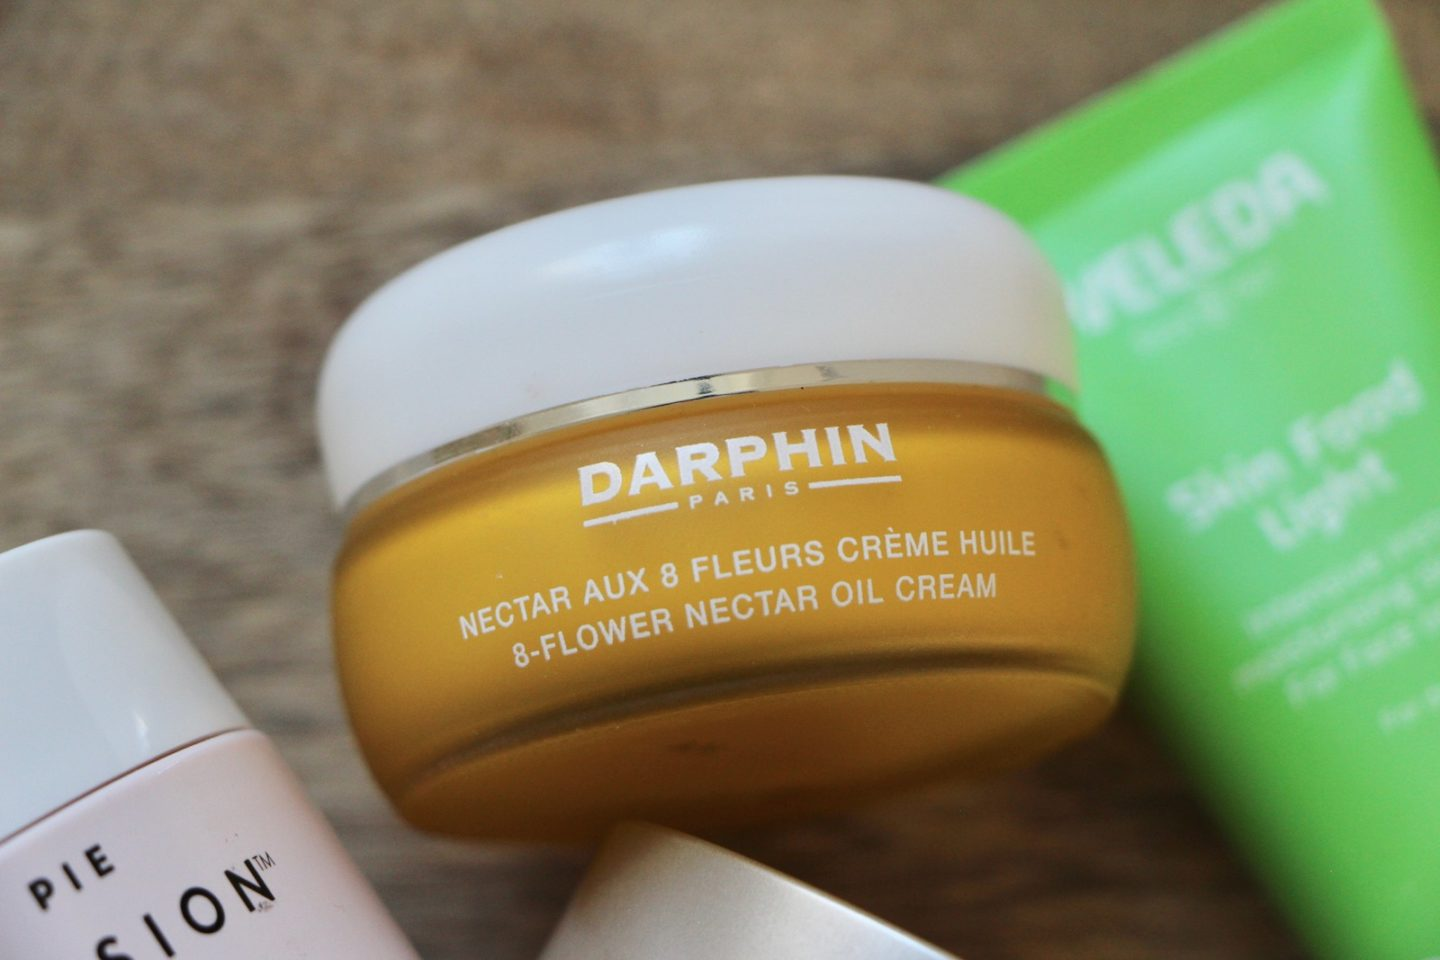 darphin 8 flower nectar oil cream review